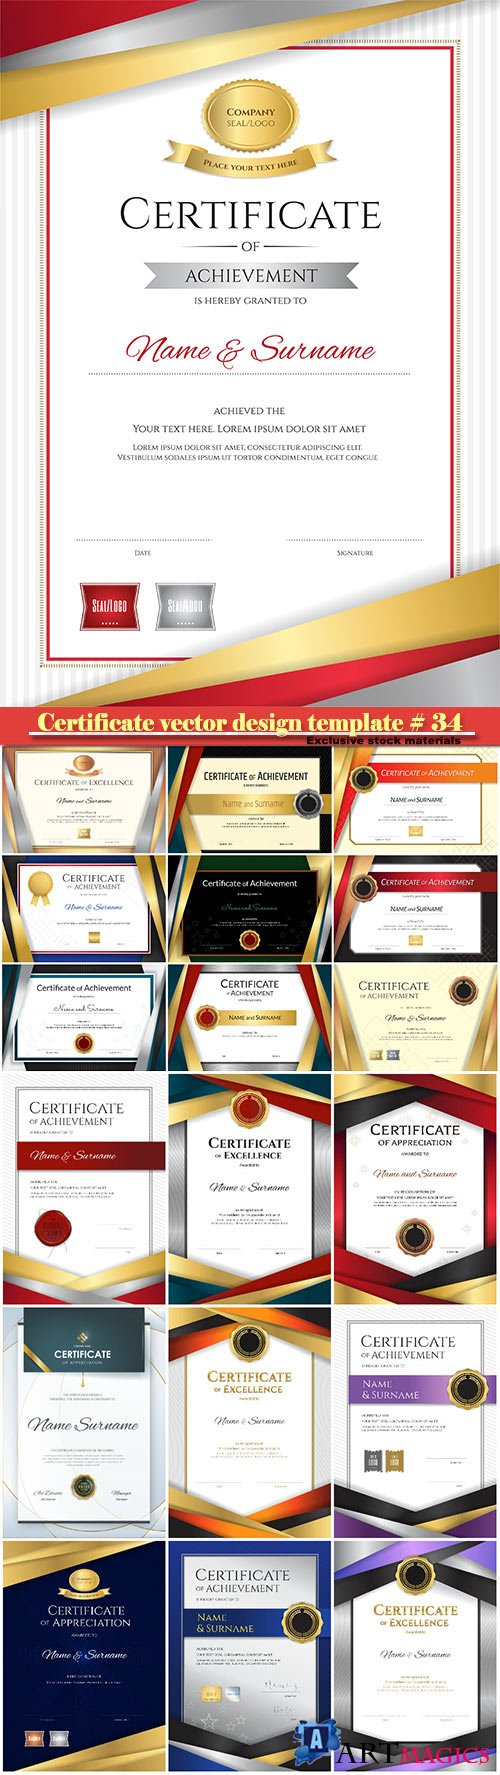 Certificate and vector diploma design template # 34